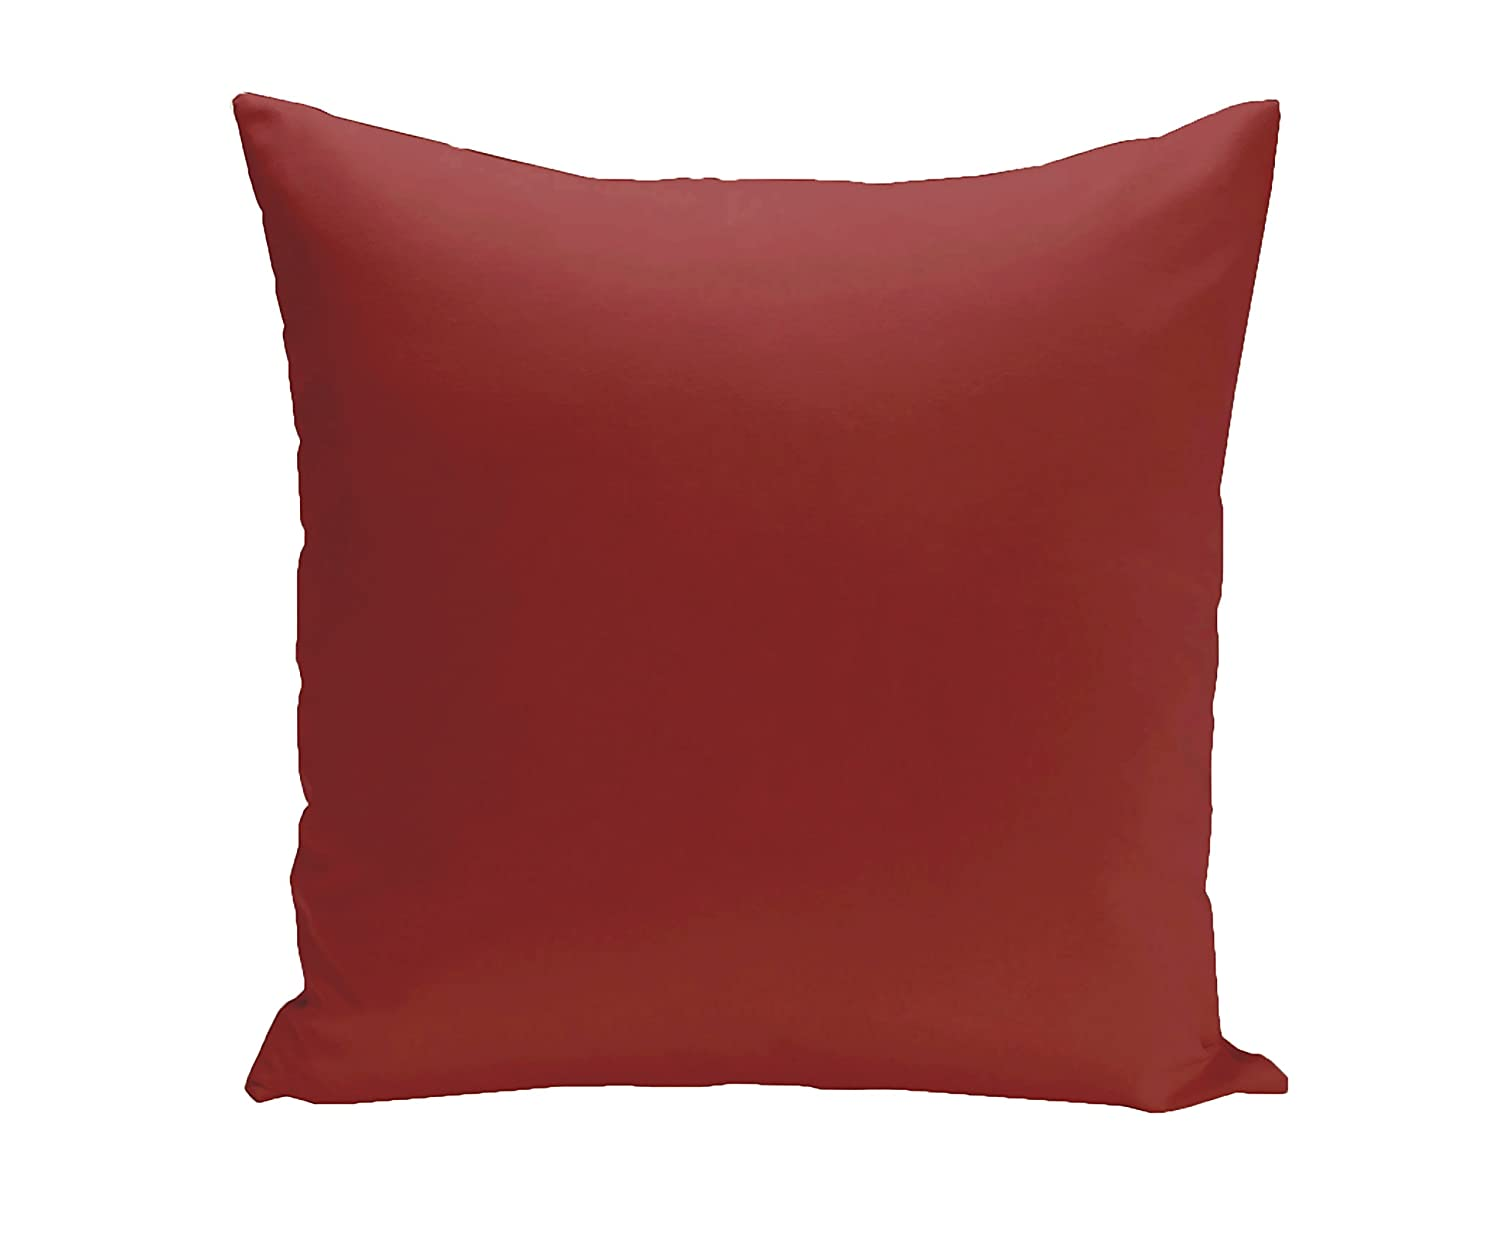 Dragon,Red E by design PSO-N62-Dragon-26 Asian Collection Solid Decorative Pillow